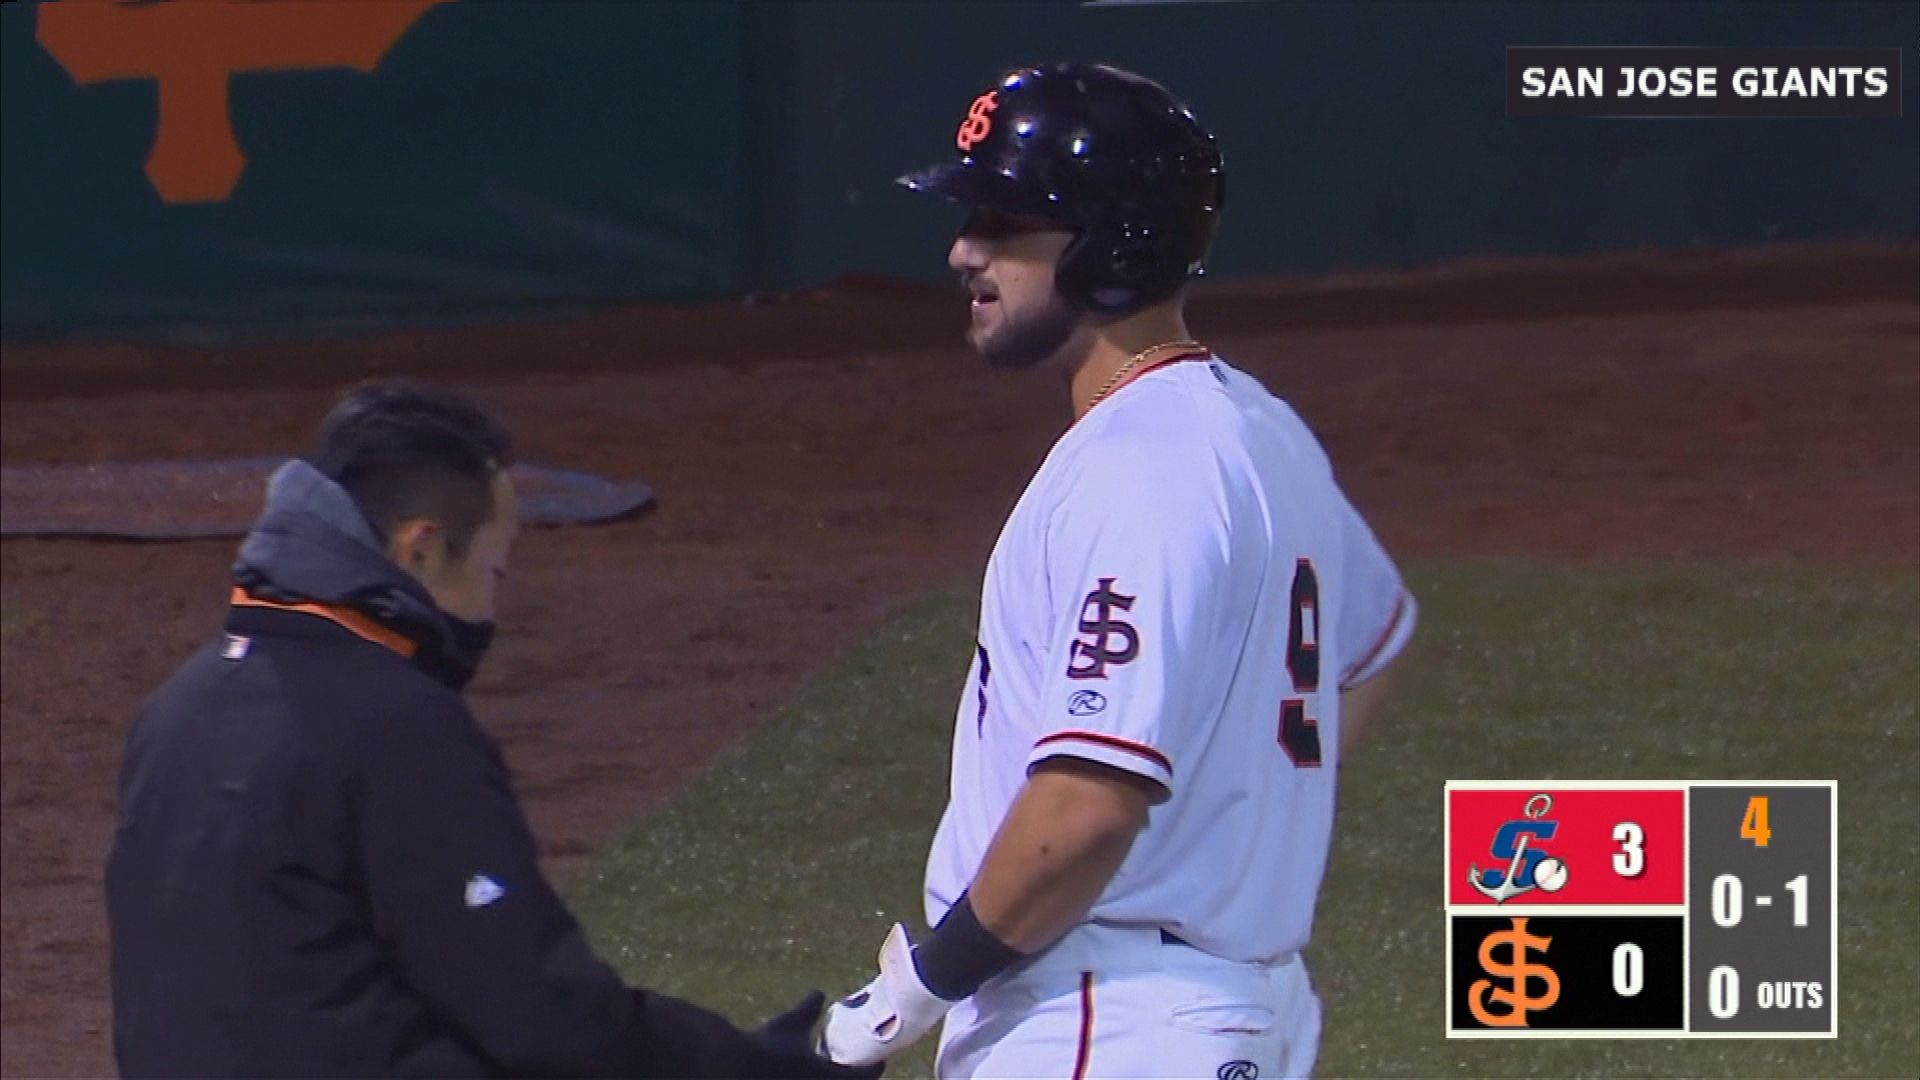 Watch the pitch that broke Joey Bart's hand in San Jose